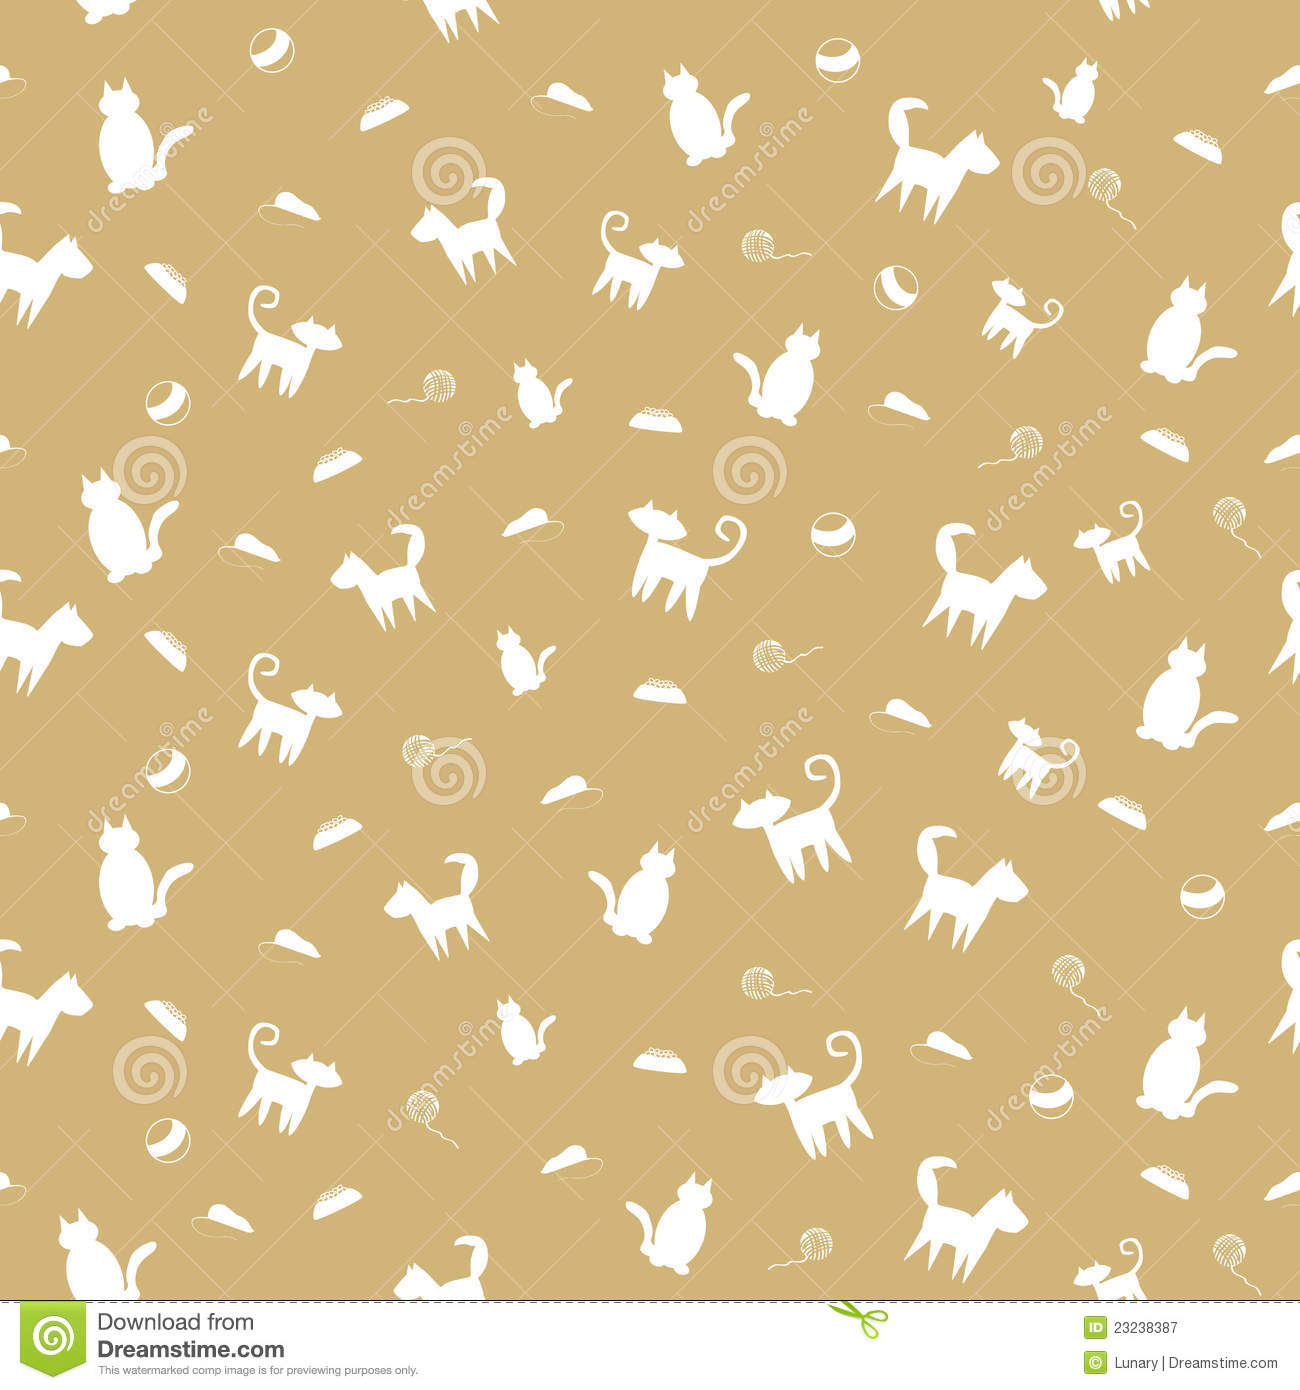 Cute Paw Print Wallpaper Pets Seamless Pattern Stock Vector Illustration Of